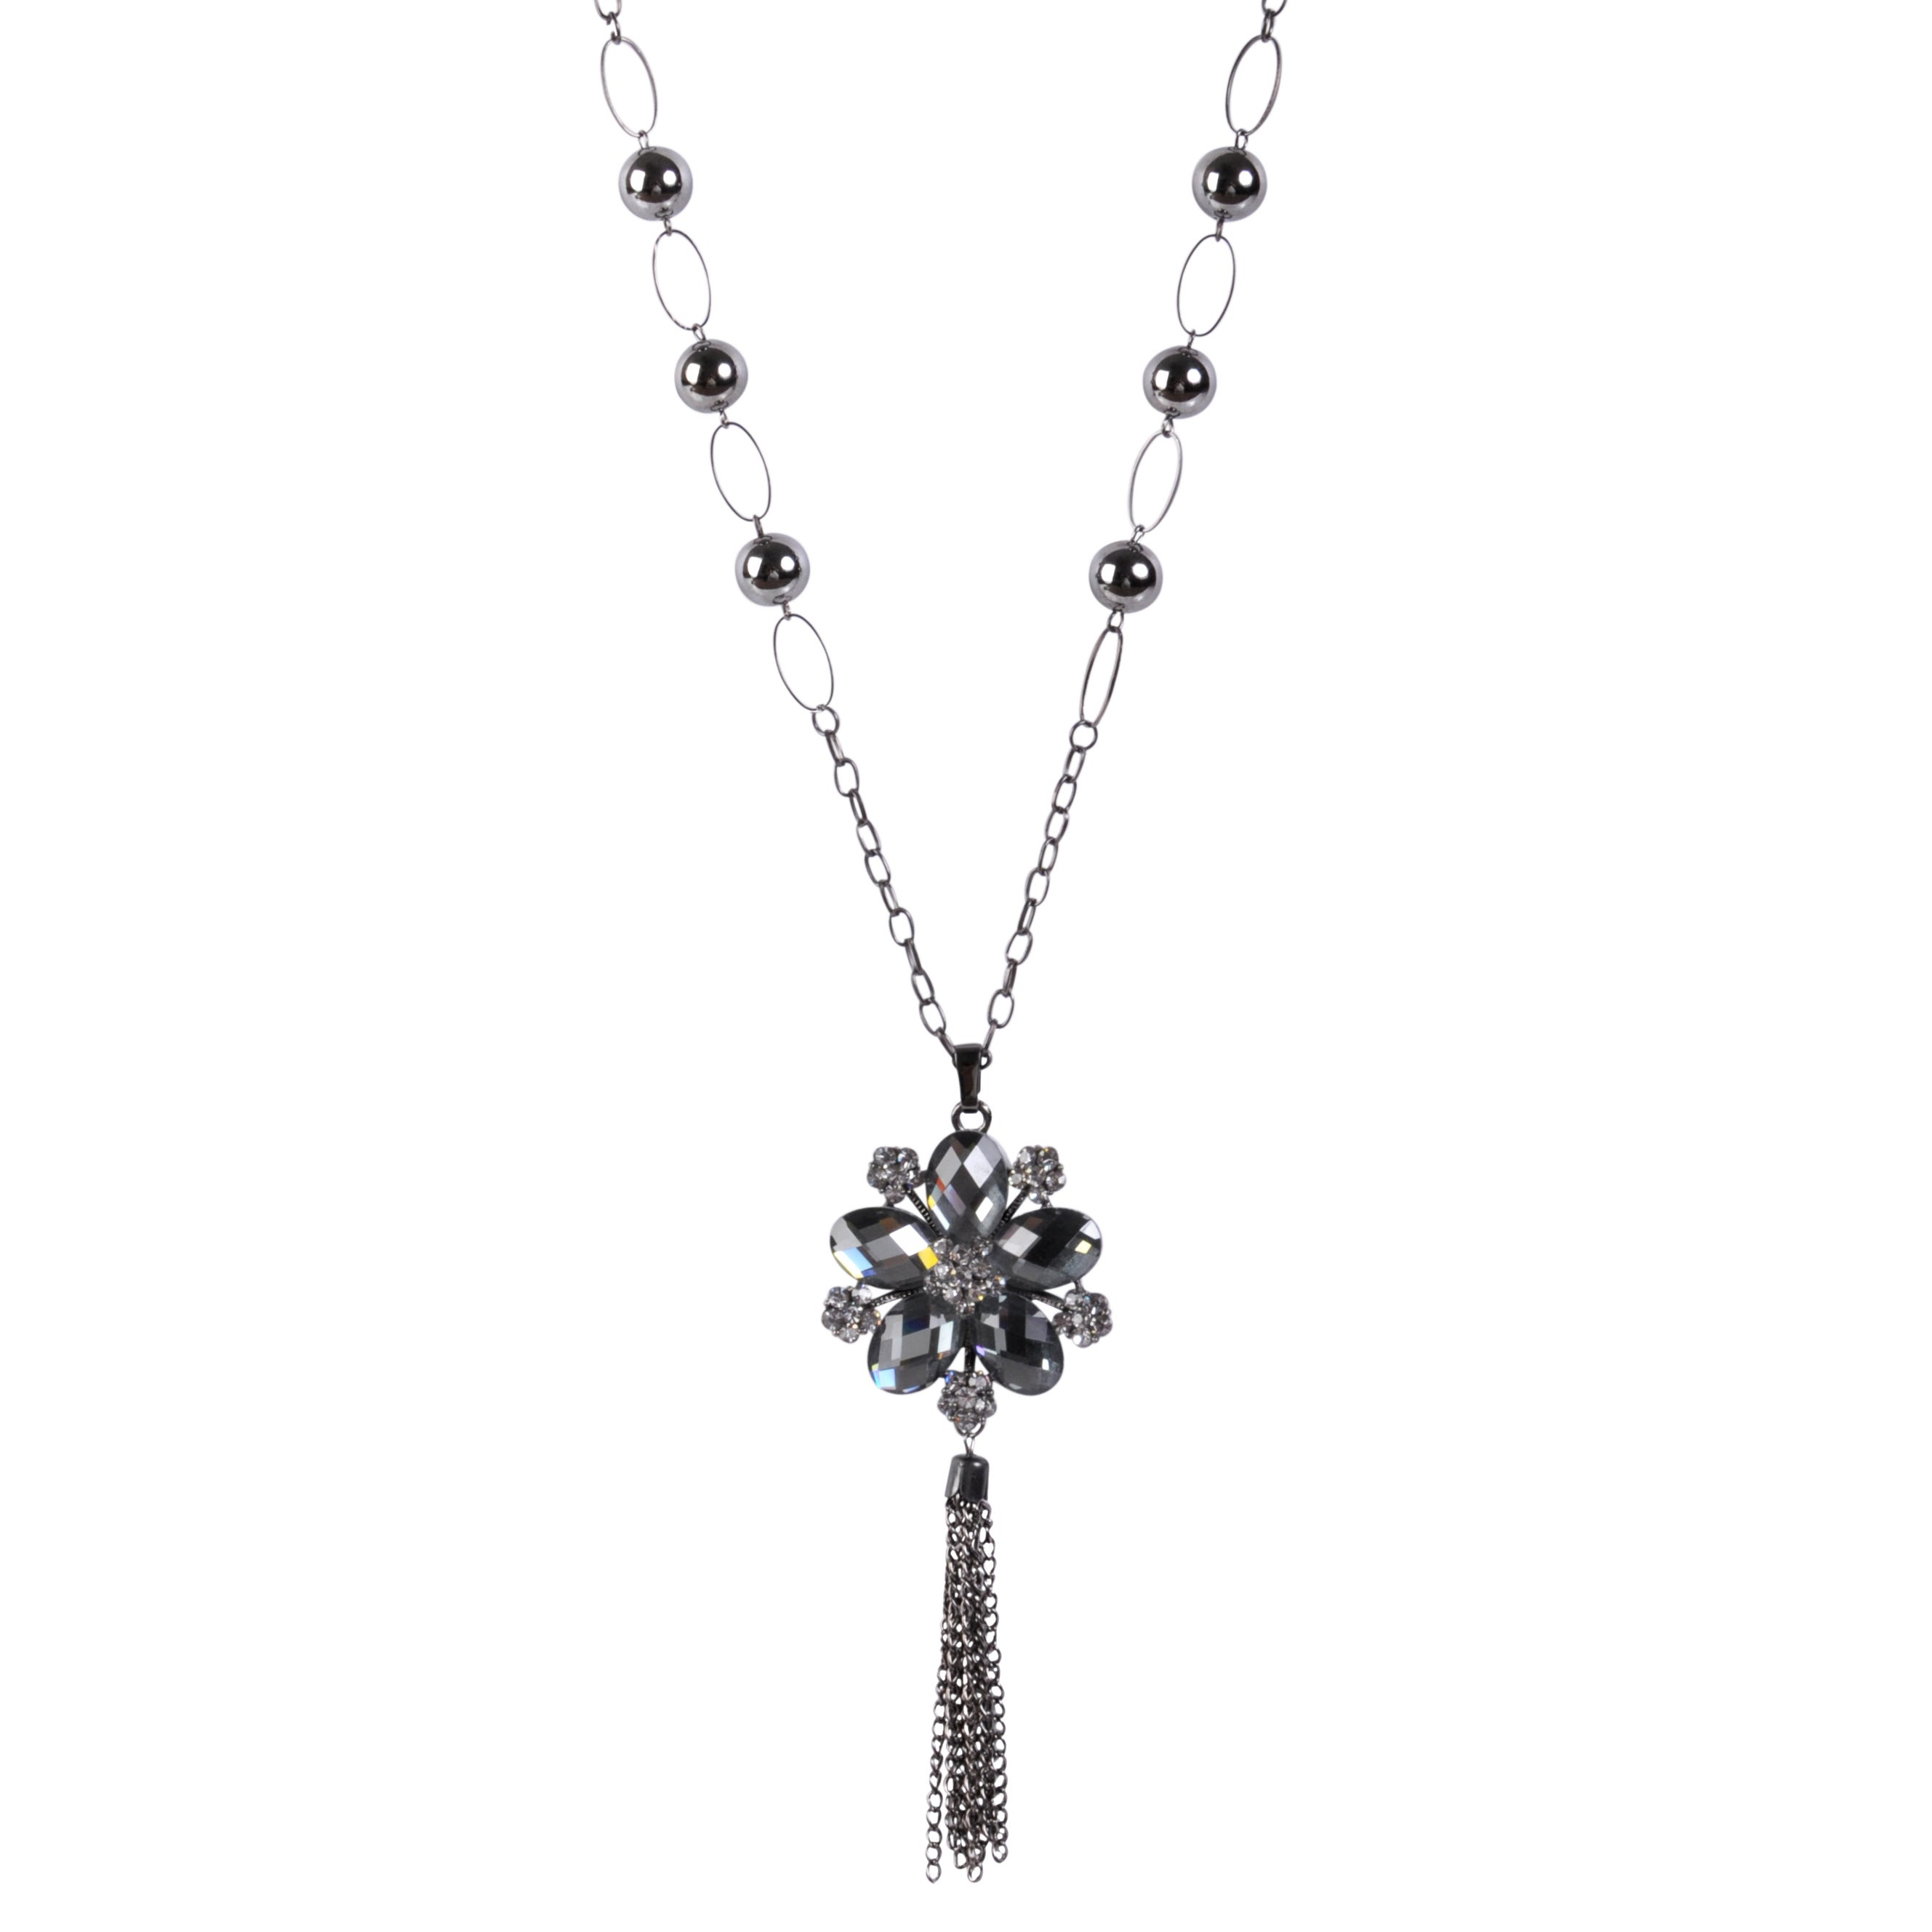 Journee Collection Rhodium-plated Base Glass Stone Flower Necklace